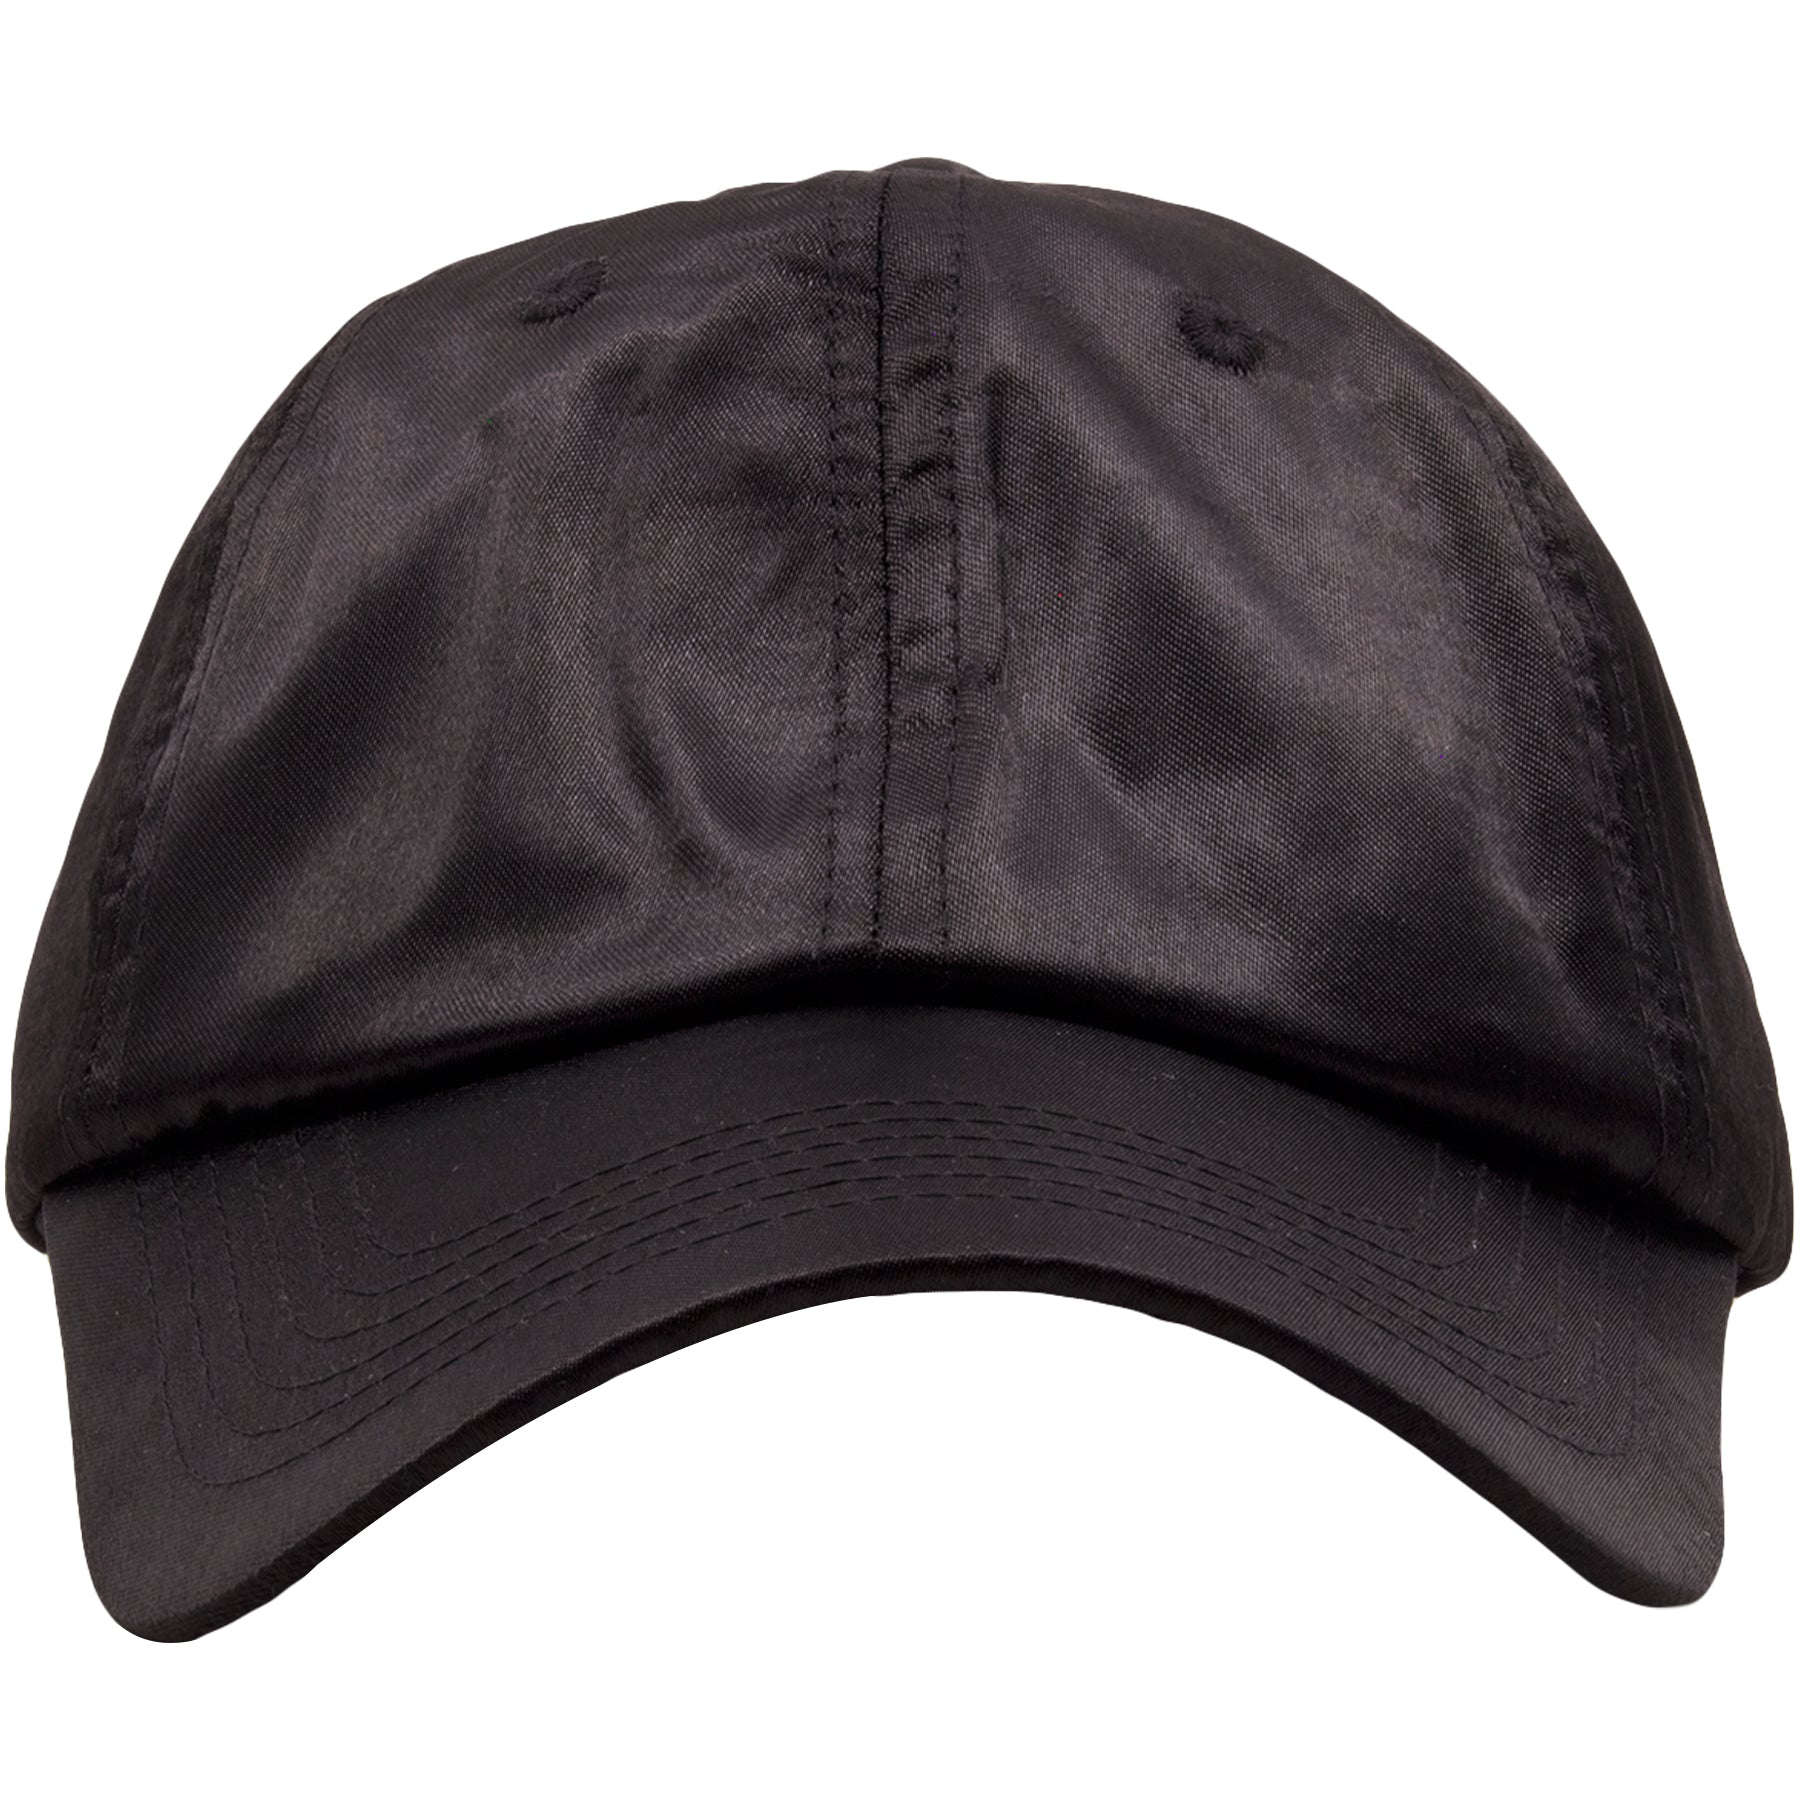 eb7c45a4375 The black satin blank adjustable ball cap is solid black and made out of 100 %